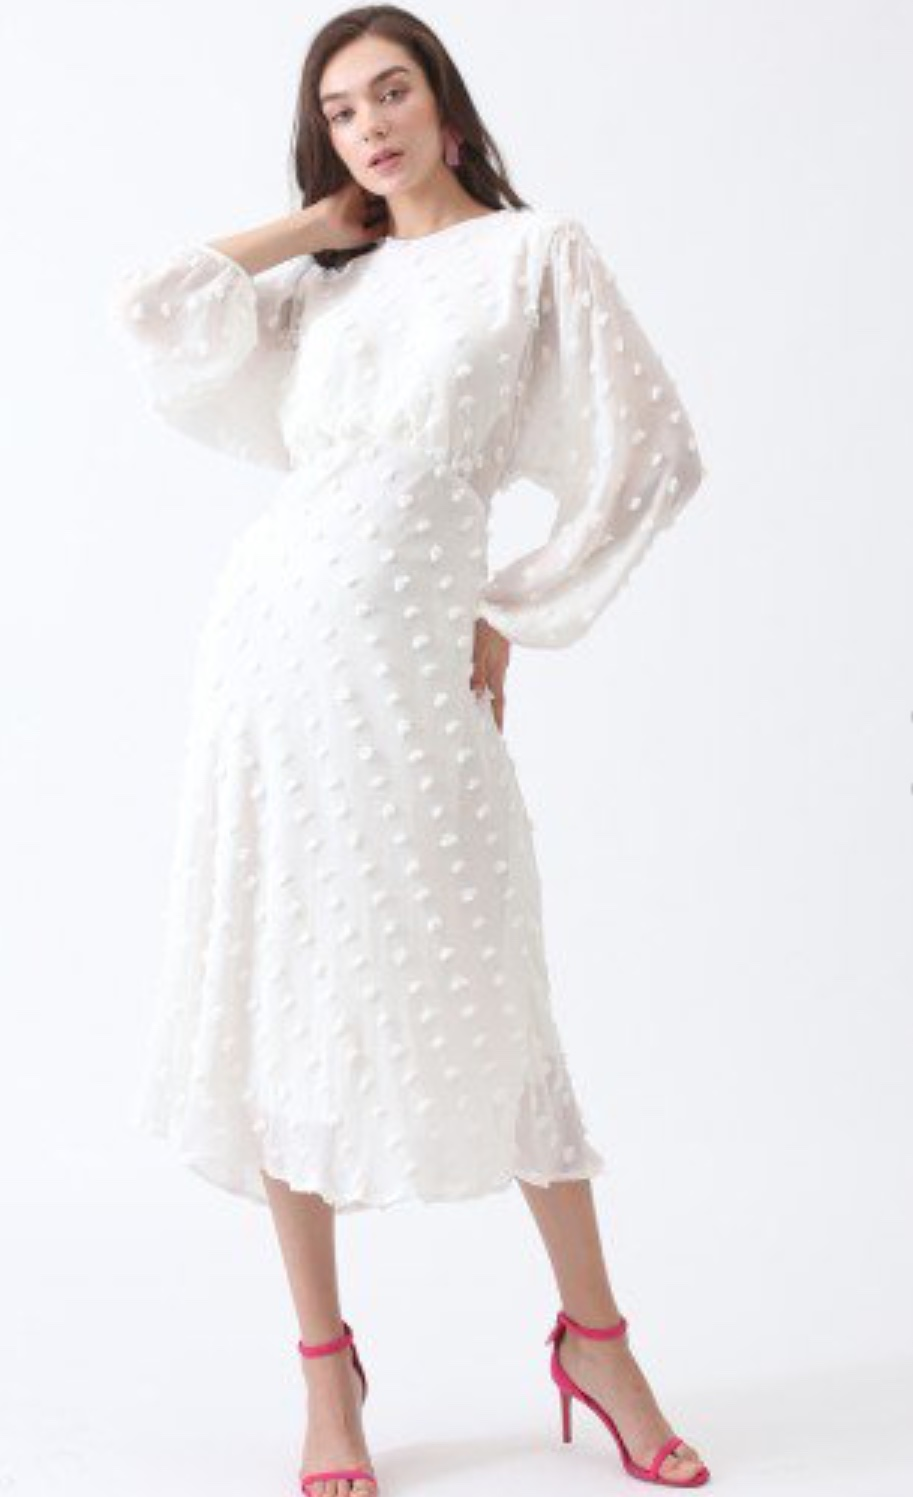 Obsessed with the cut of this one! The V-cut under the bust is a really flattering shape!